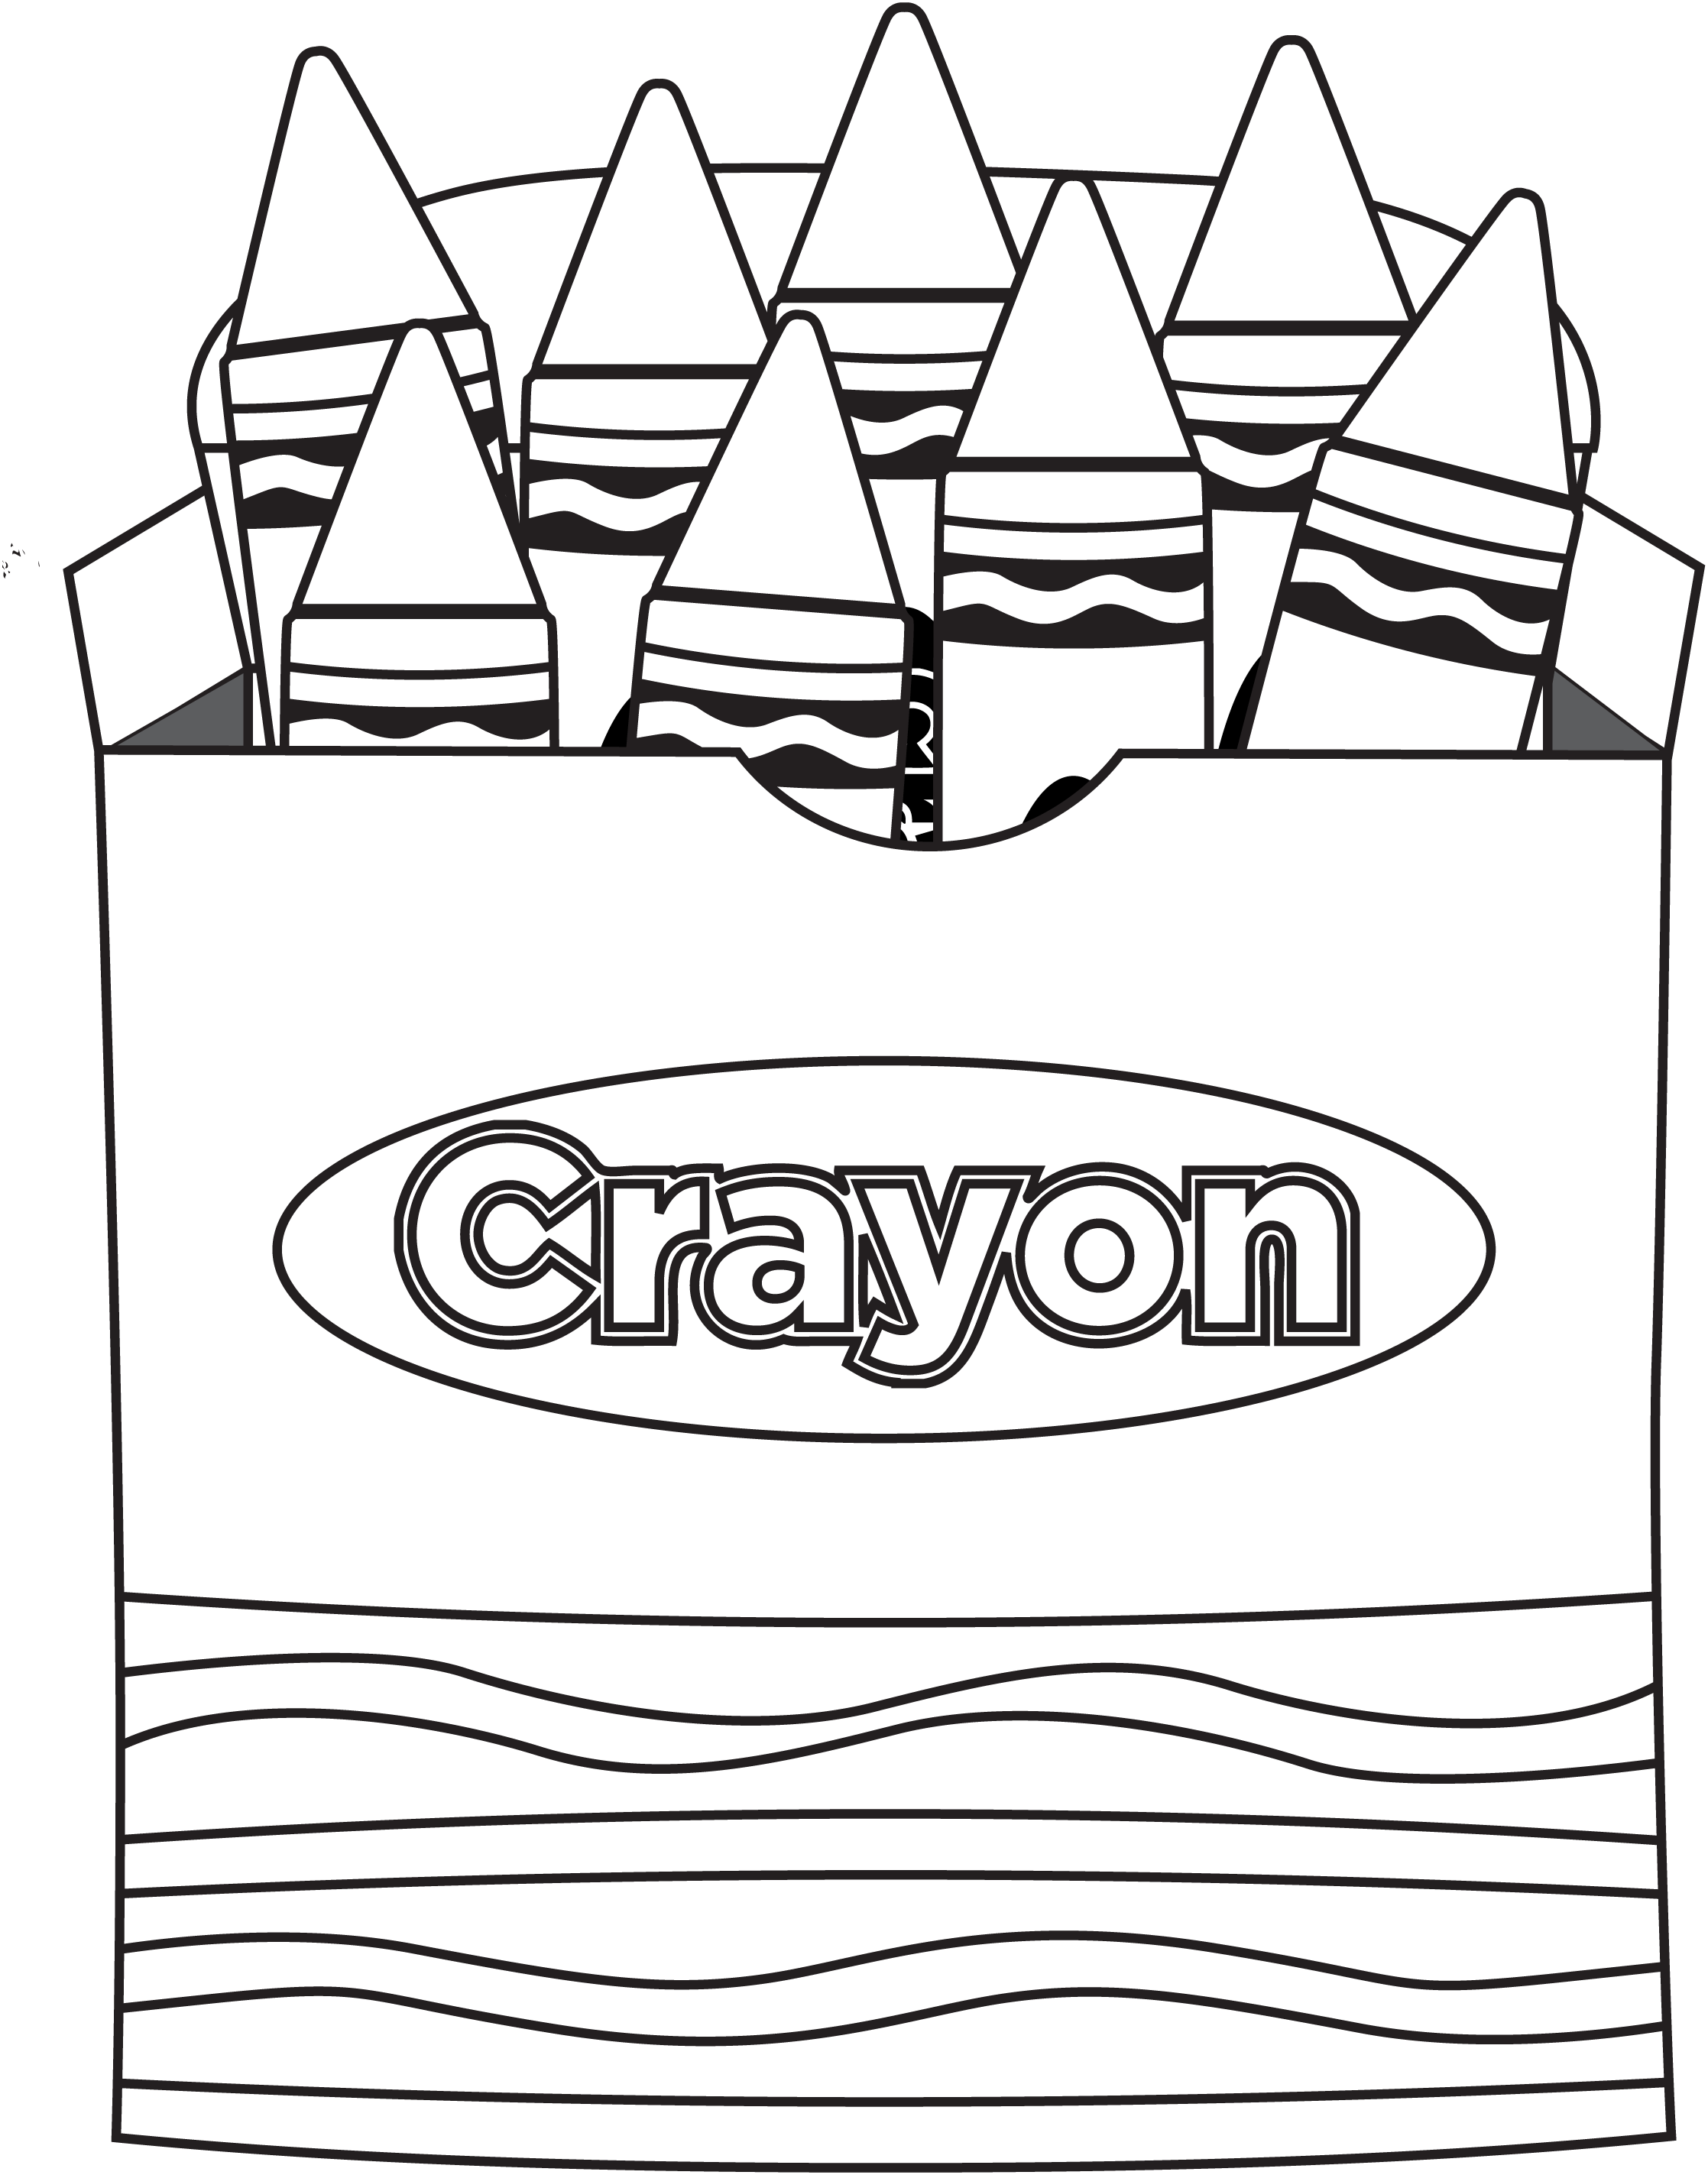 The day the crayons quit coloring page coloring home for Crayon color page